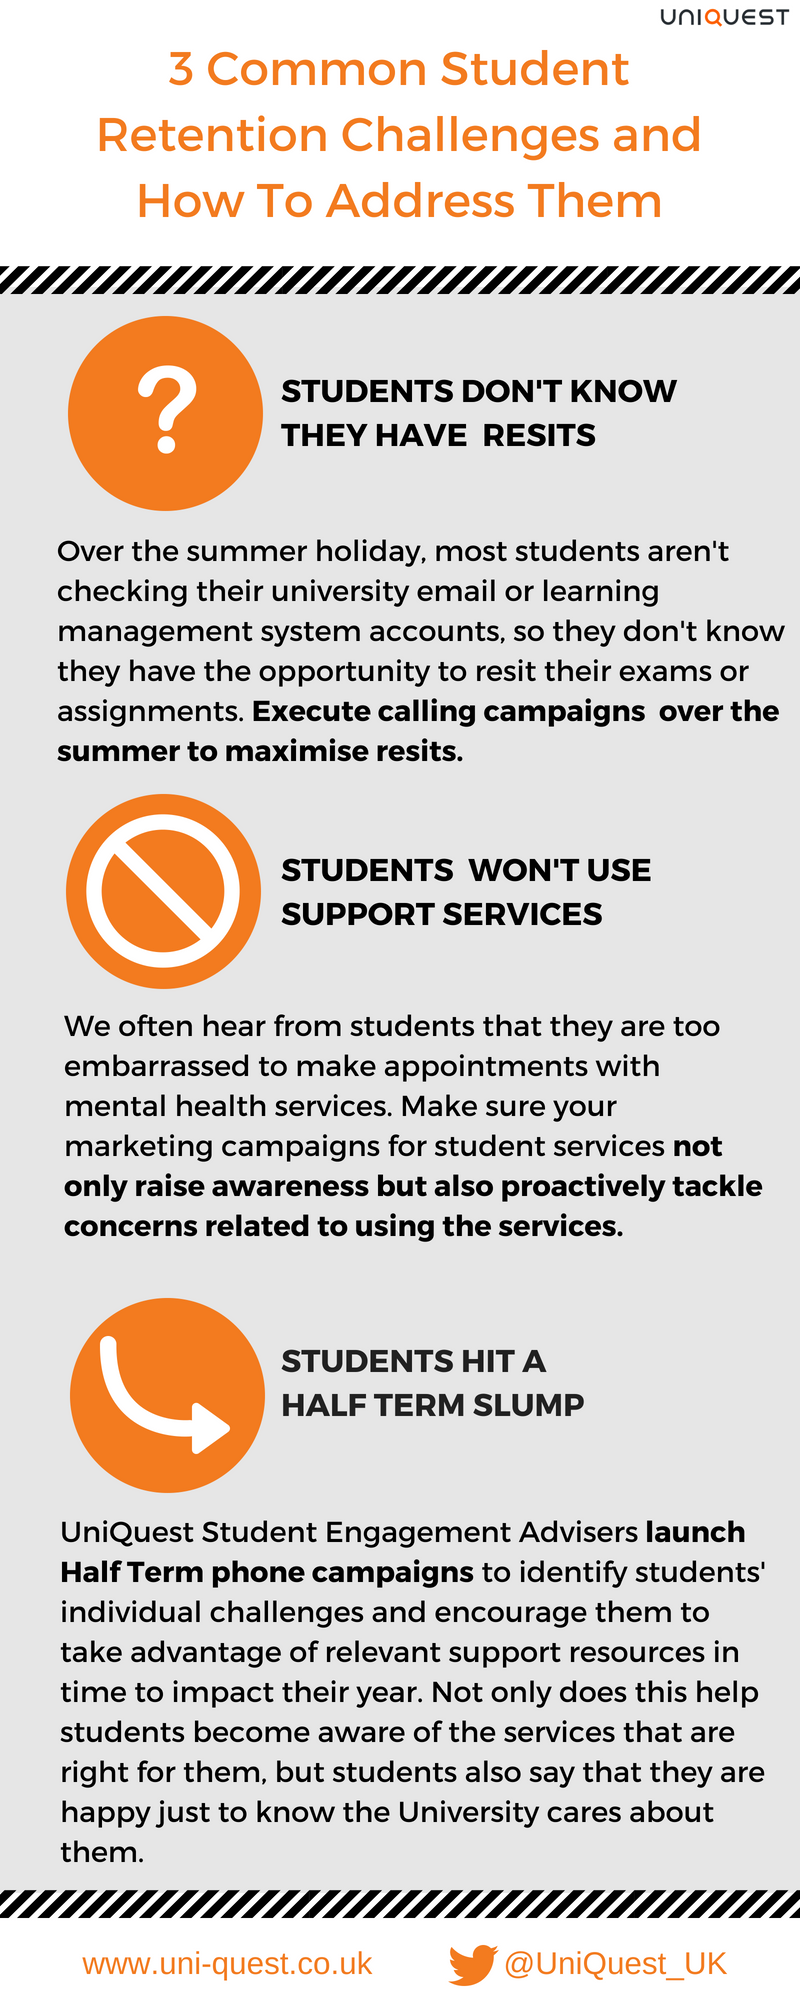 Infographic: 3 common student retention challenges